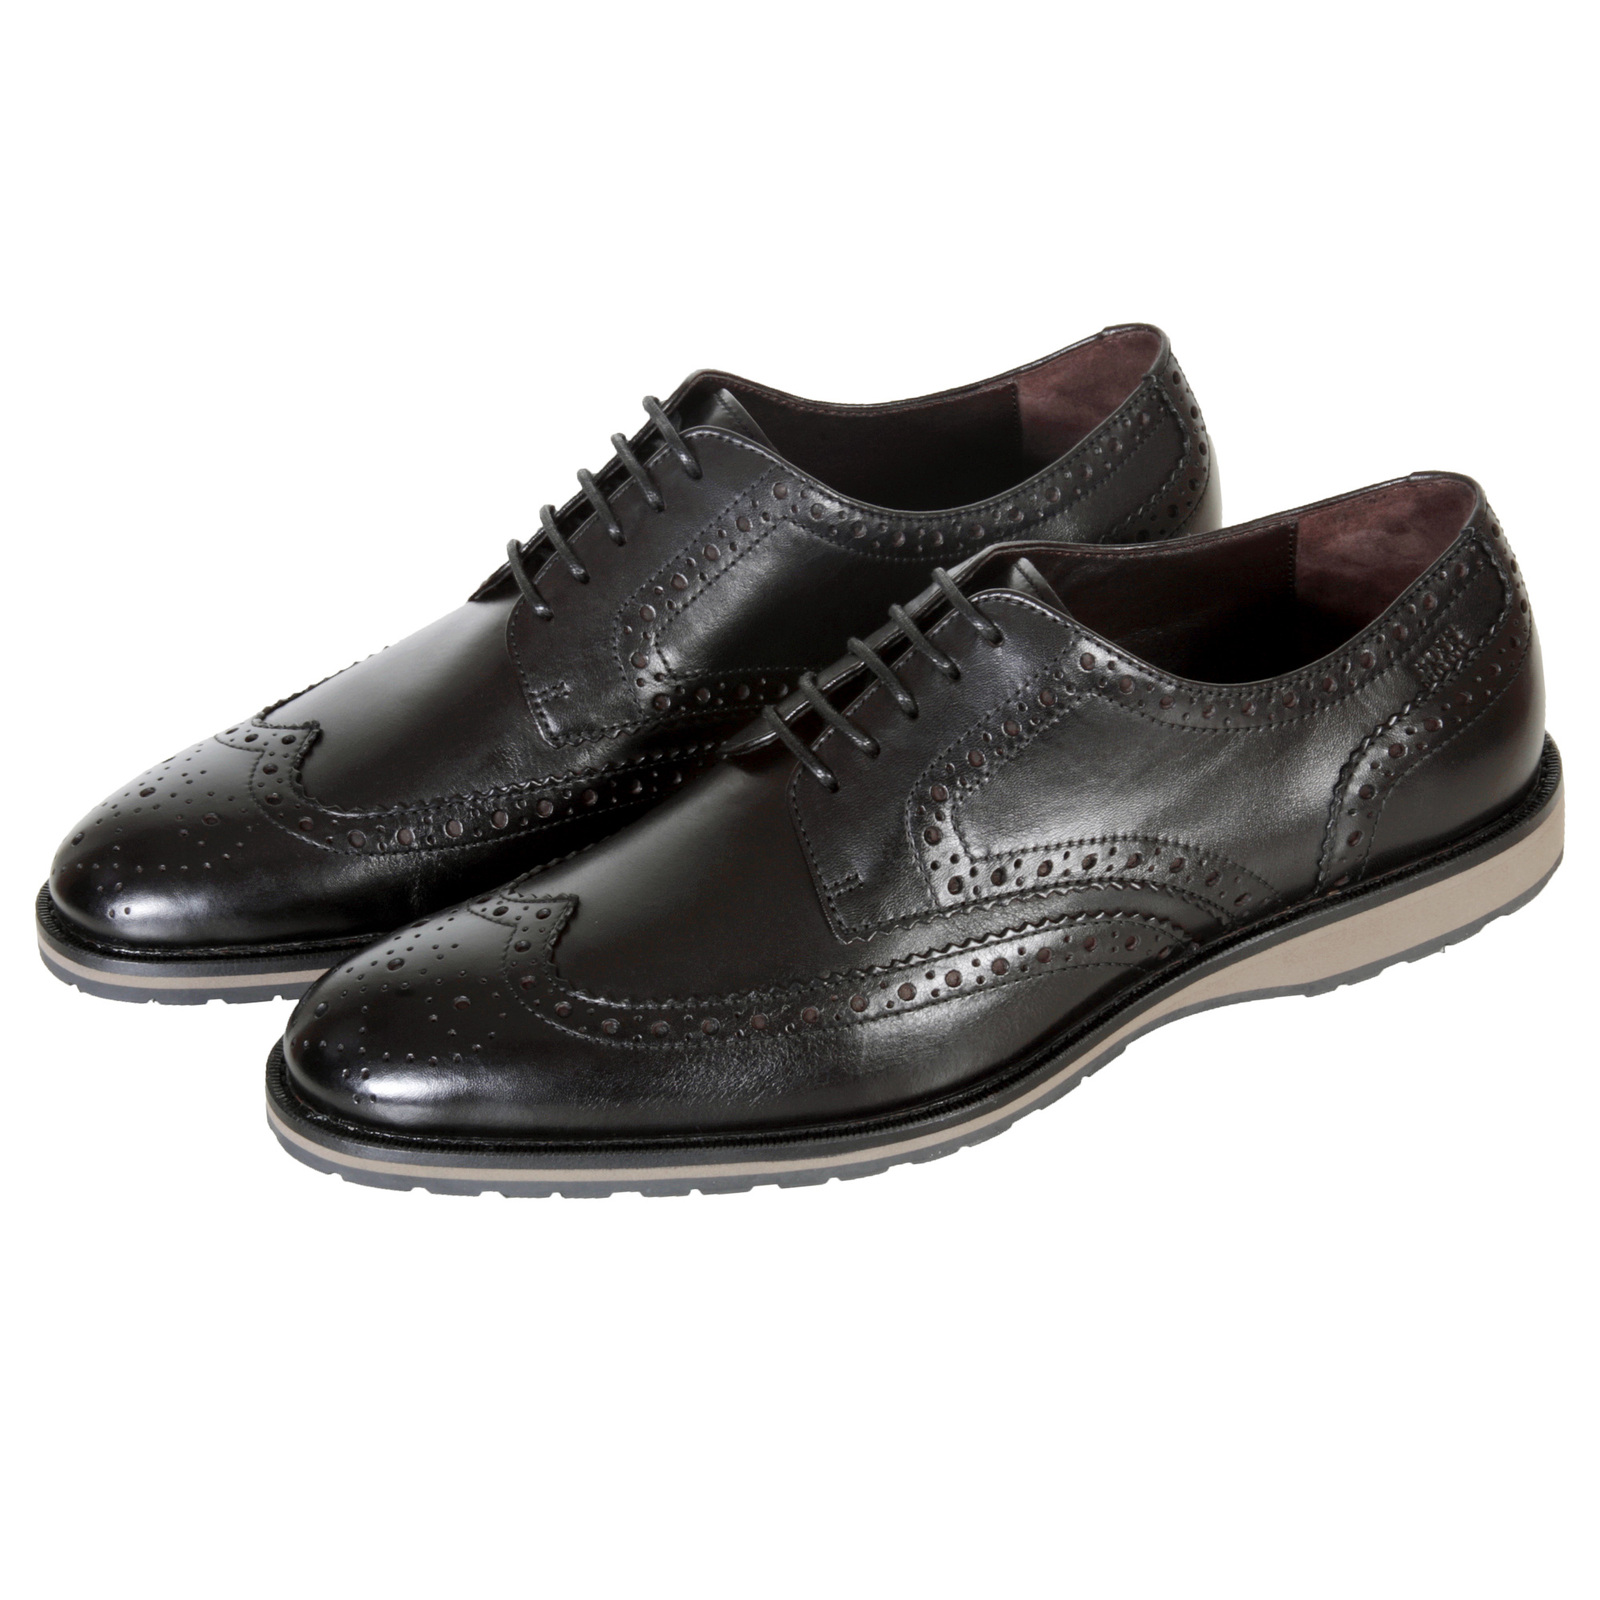 Hugo Boss Sneakers Hugo Boss Shoes Nevors Black Leather Brogue 50247372